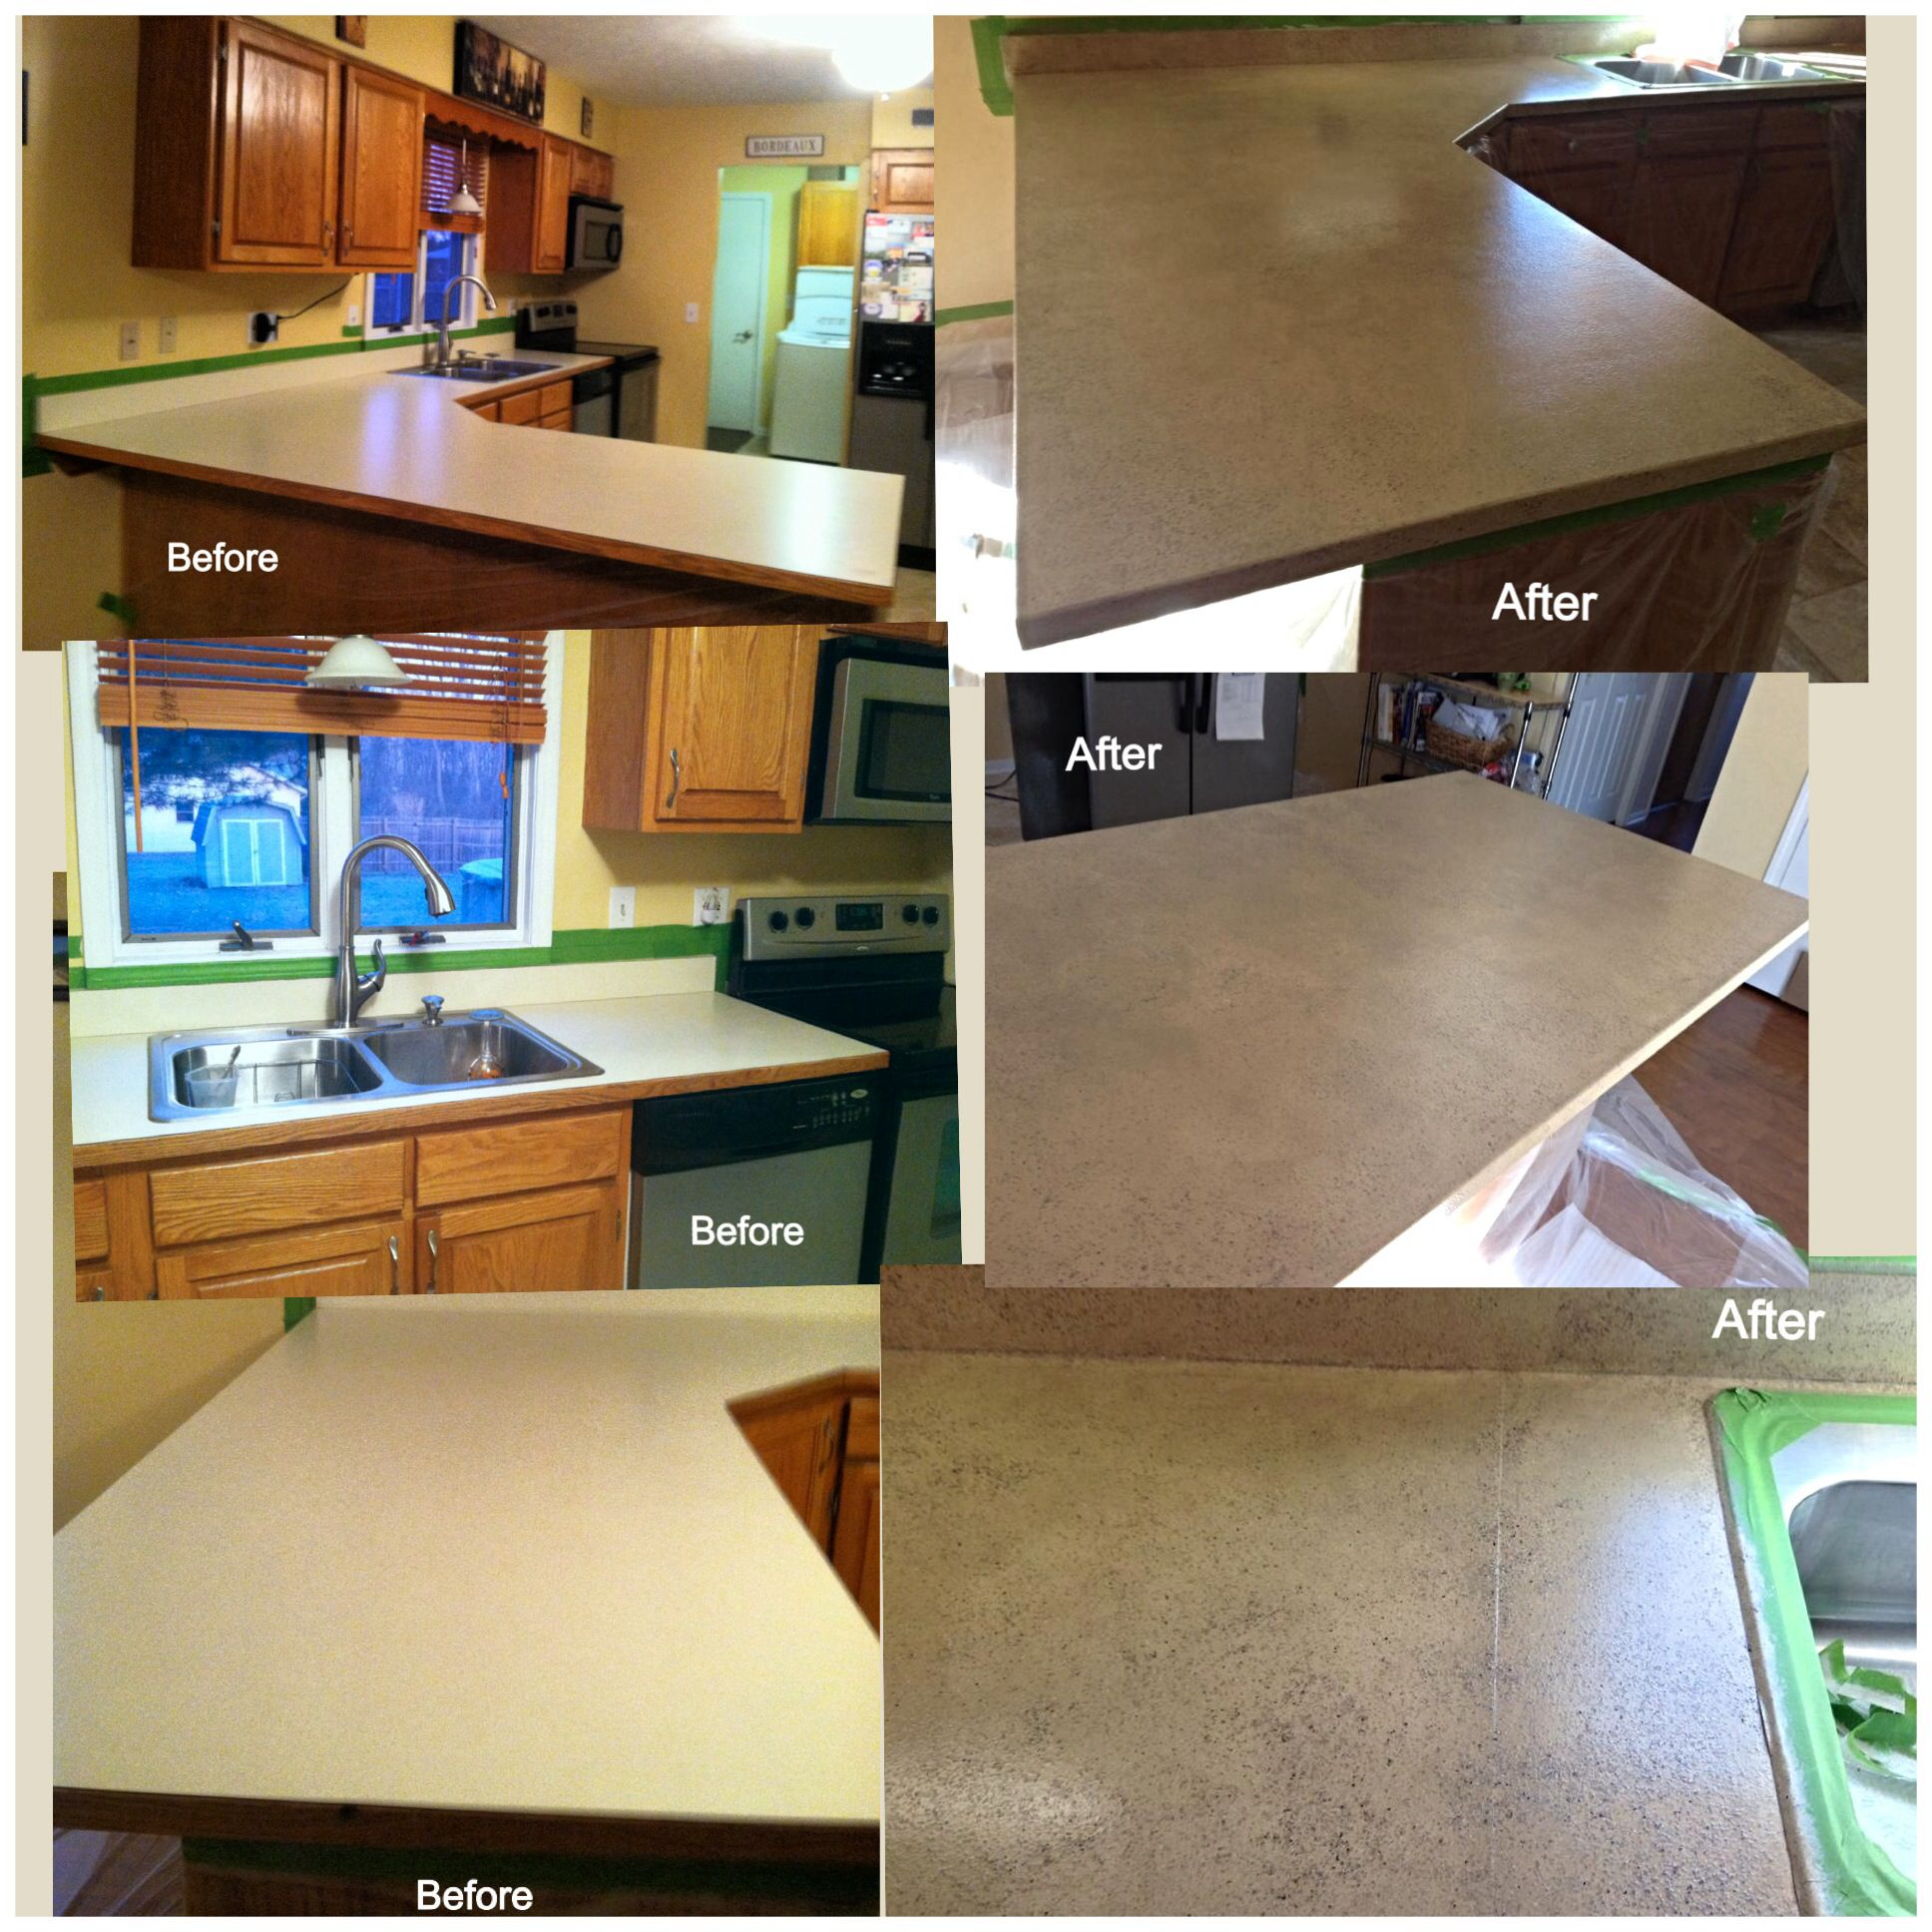 Daich Spreadstone Countertop Resurfaced My Kitchen Counters With The Spreadstone